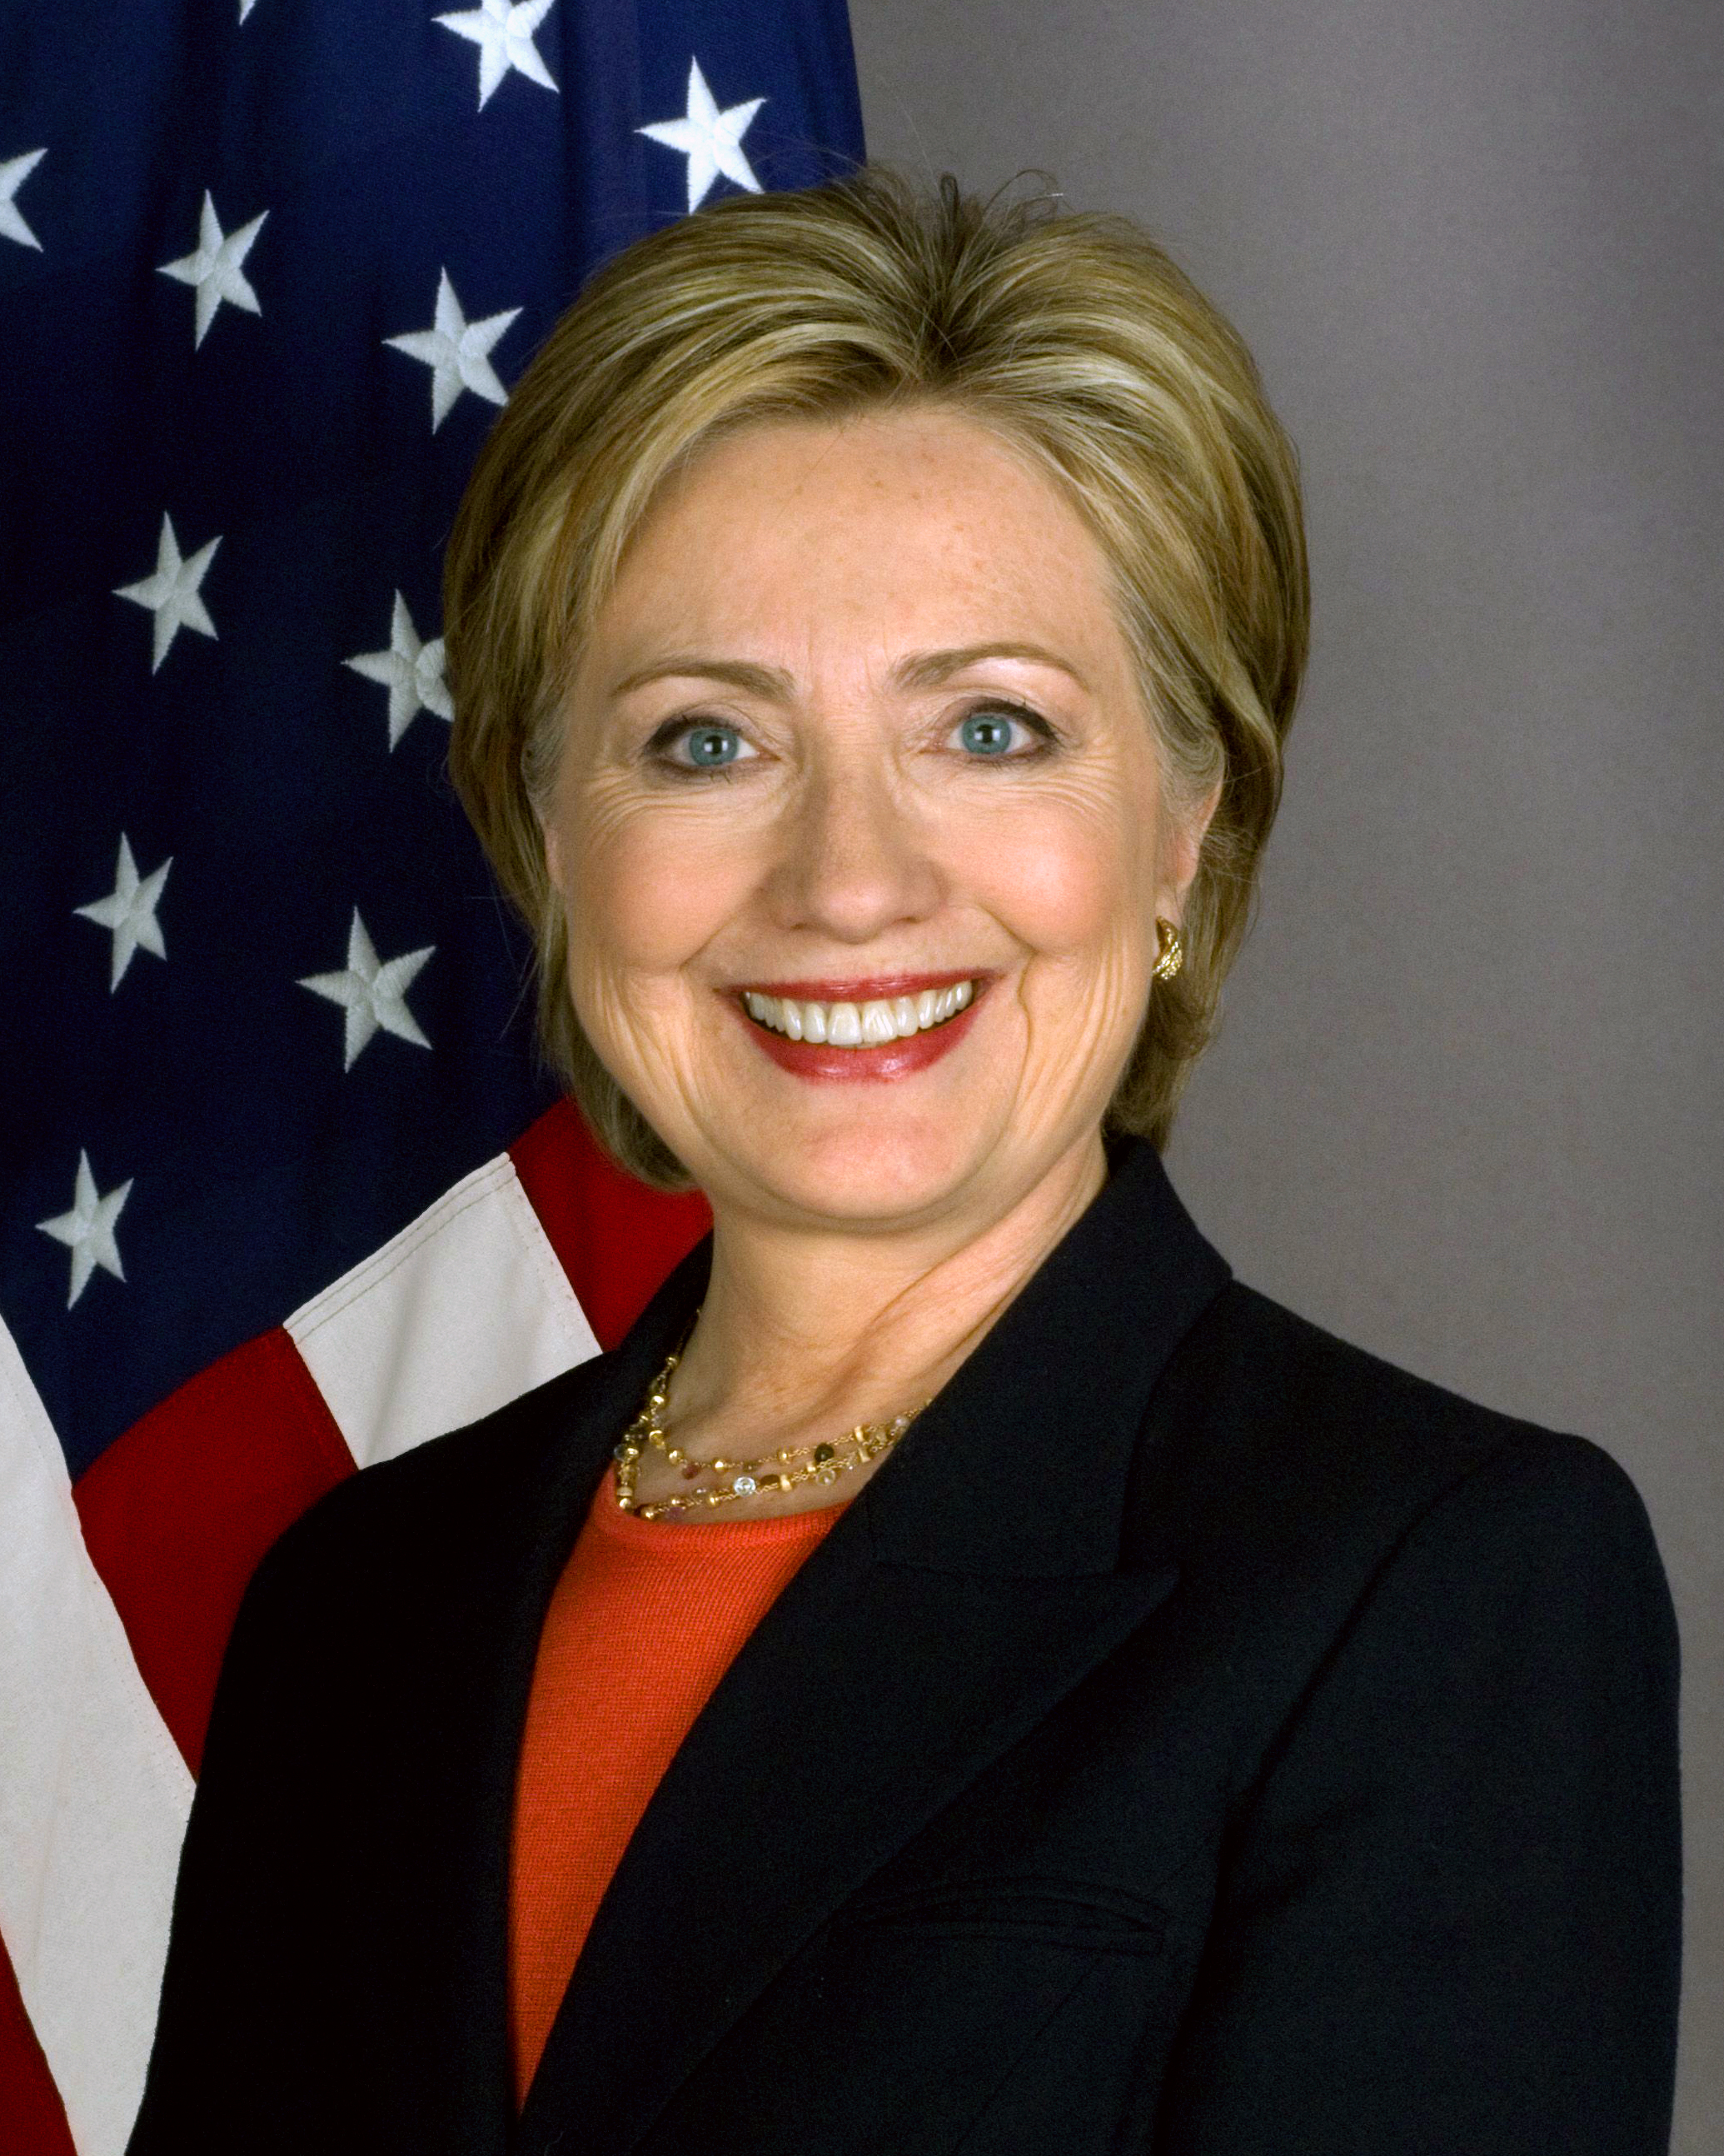 Clinton's official Secretary of State portrait (January 2009)